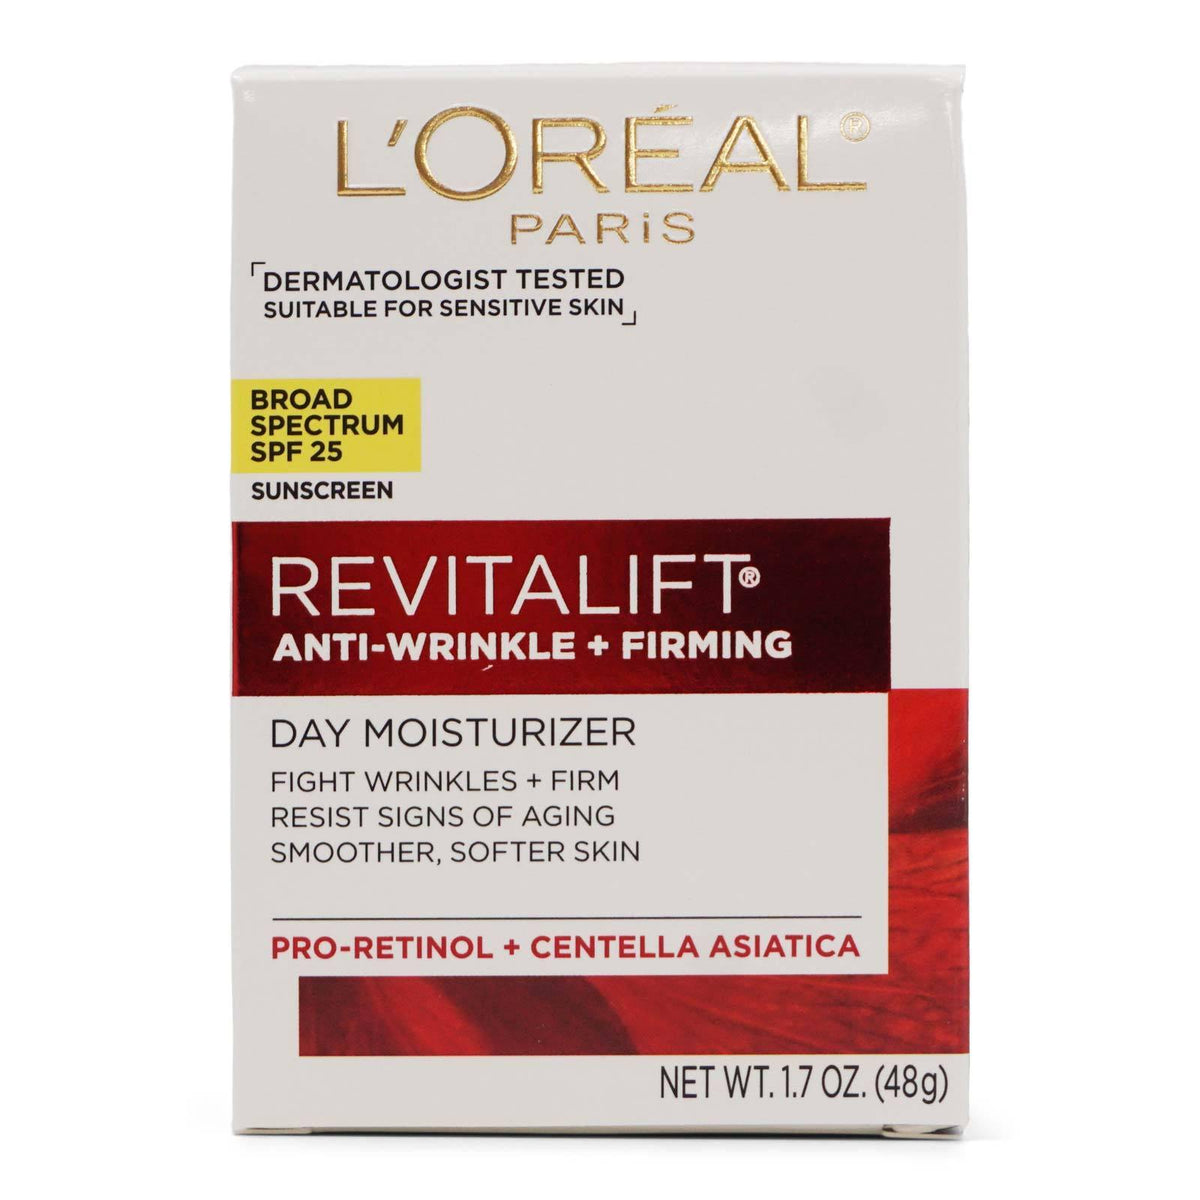 L'Oreal Skin Care Revitalift Face Moisturizer w/ SPF 25 - (1.7oz/48g) (12/cs)